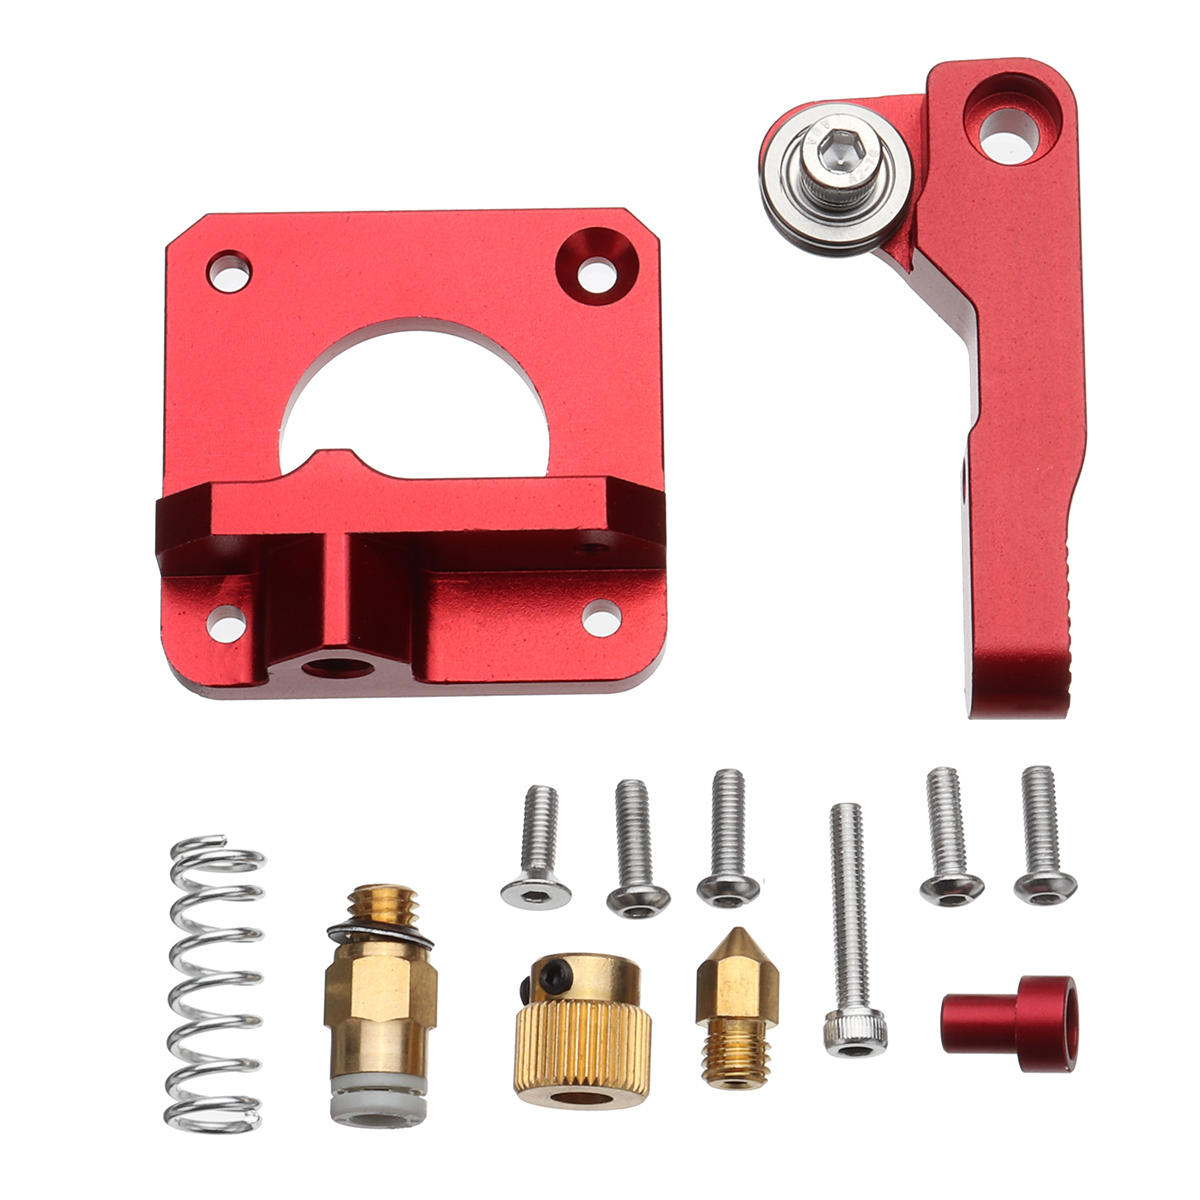 Upgraded Aluminum MK8 Extruder Replacement Kit for CR-10 3D Printers